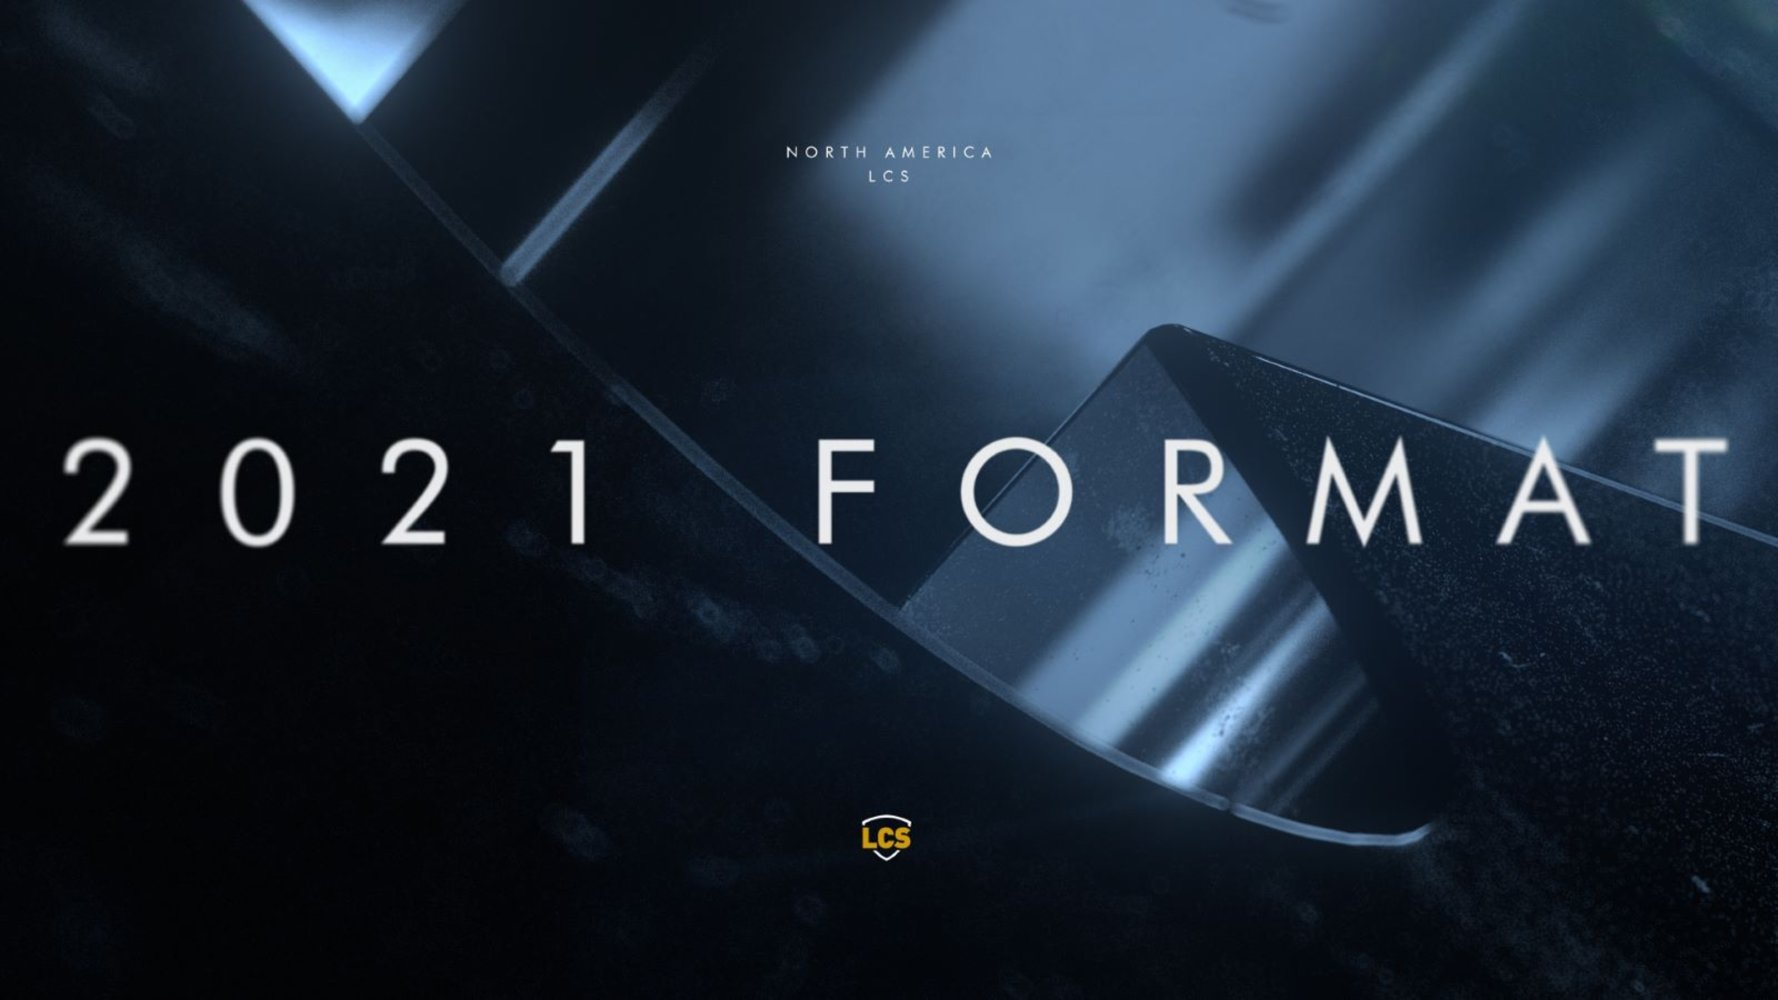 format lcs 2021